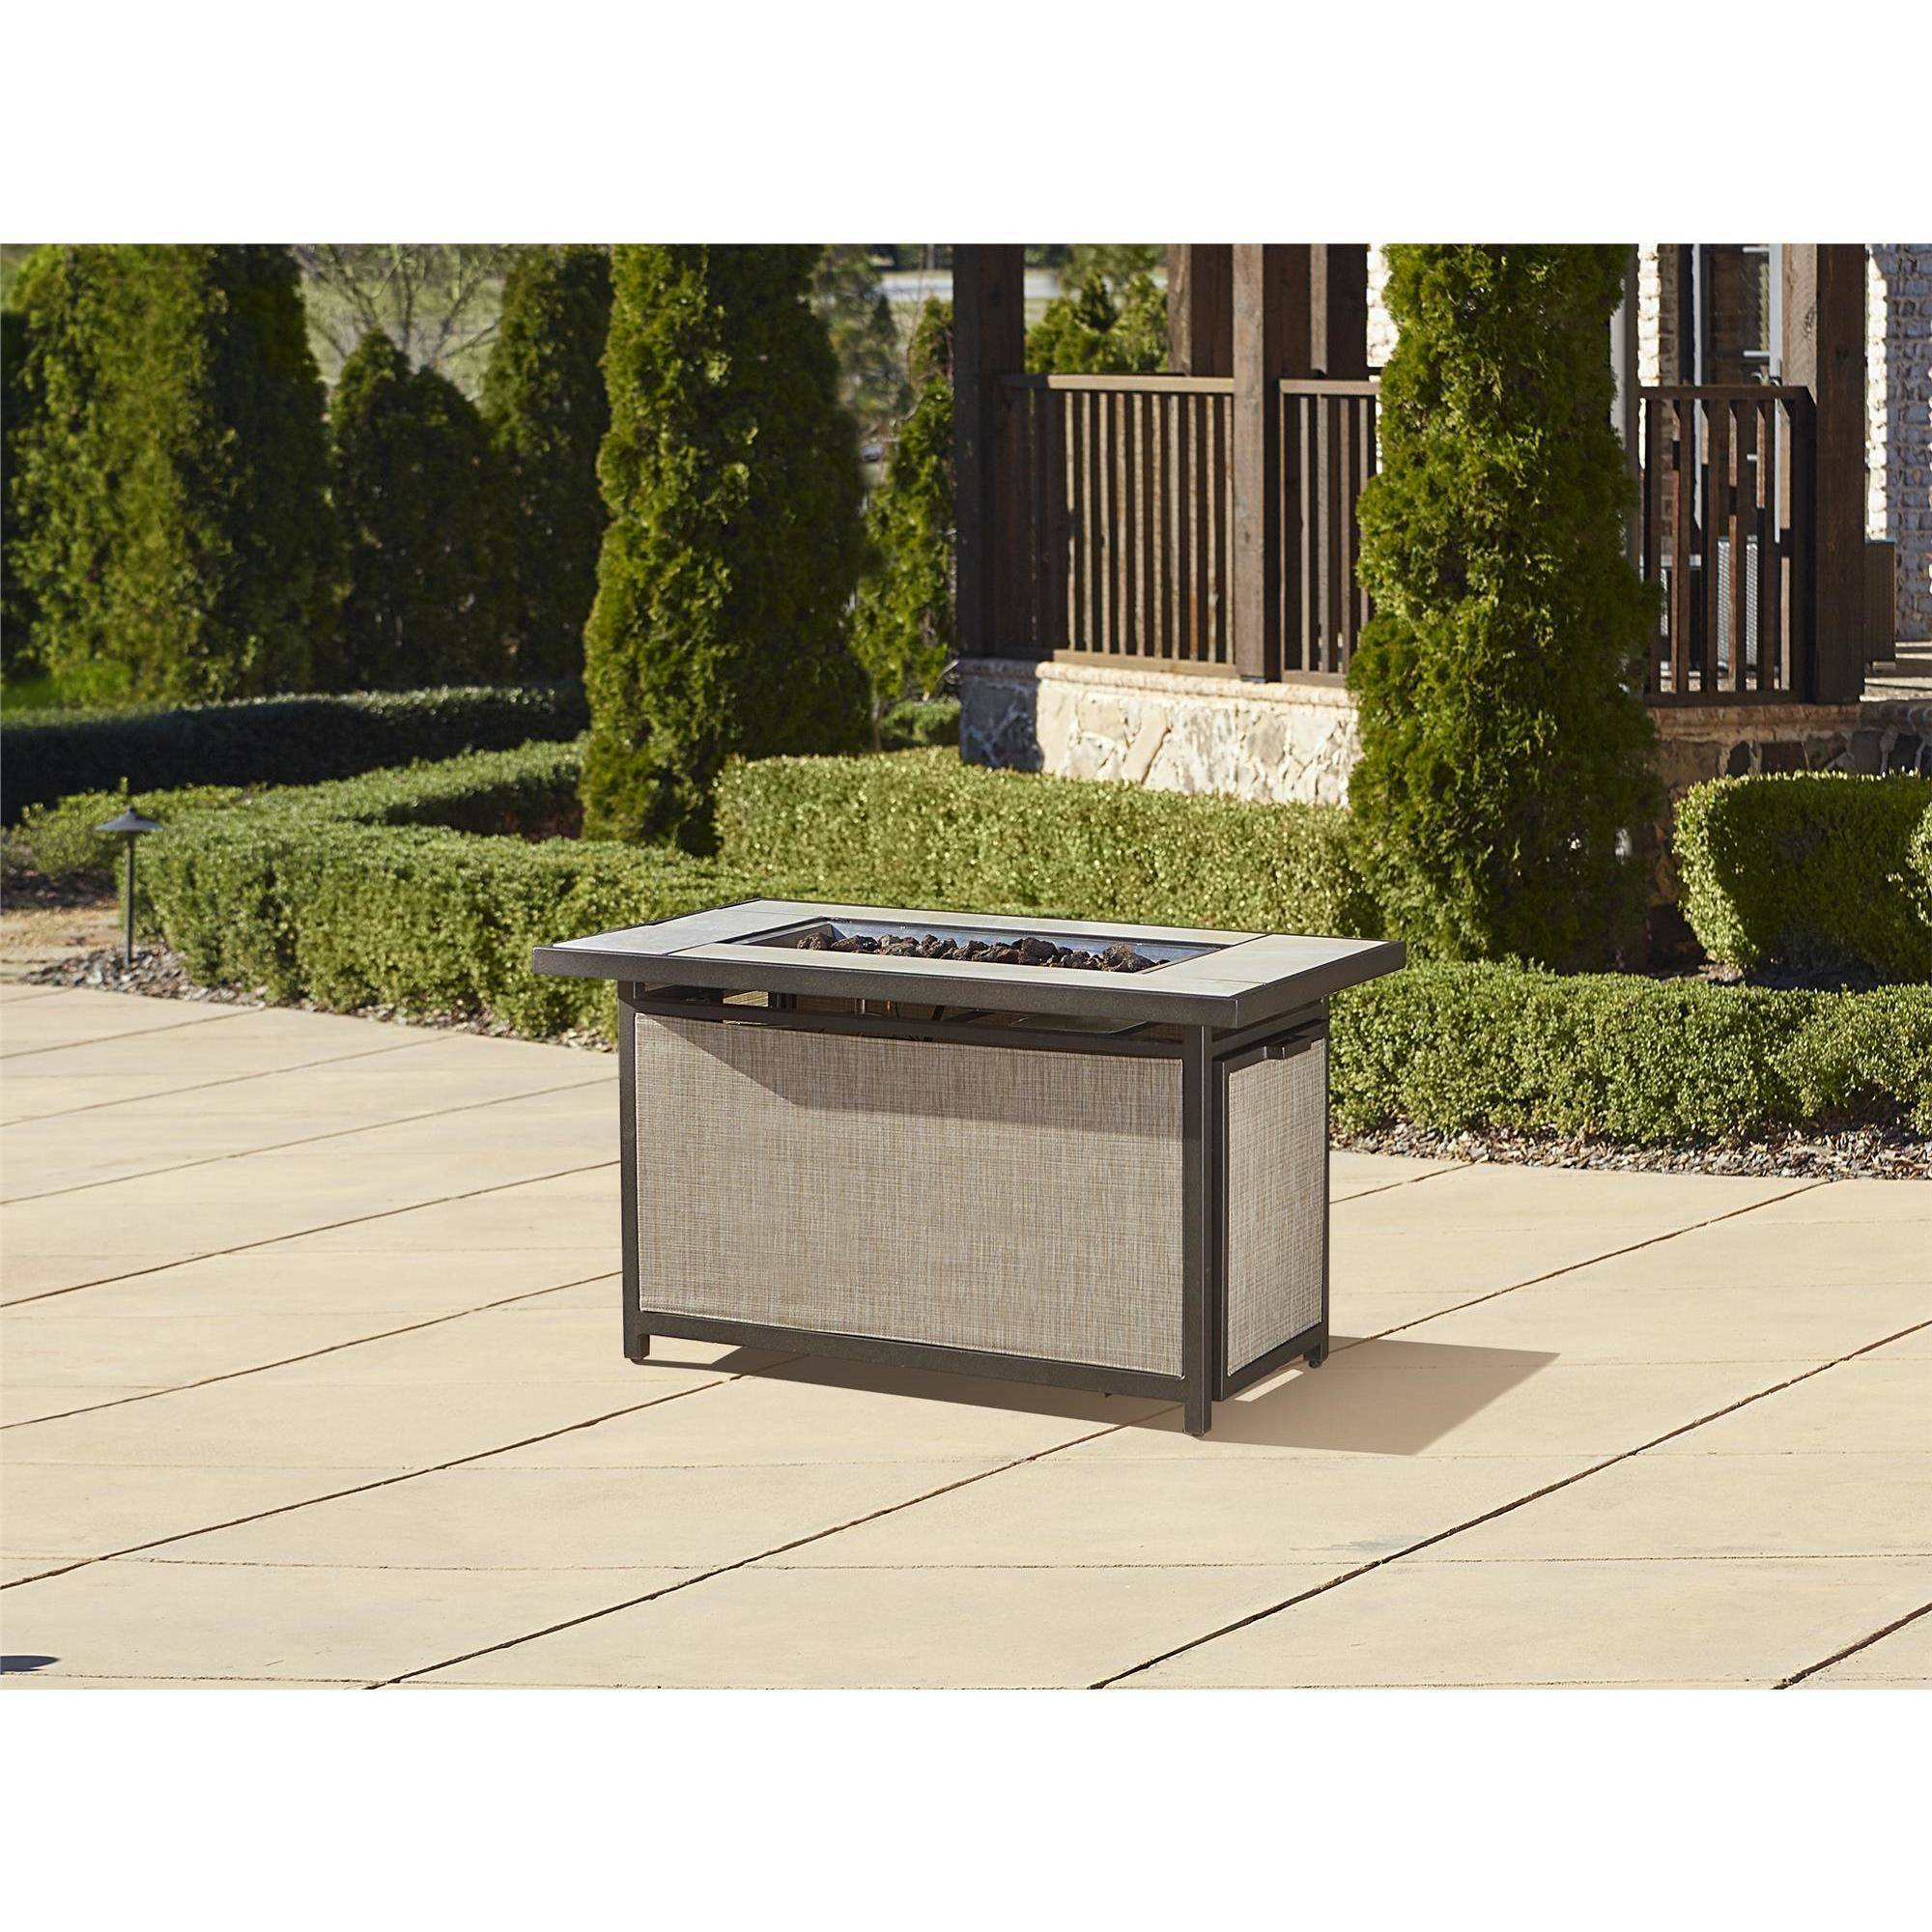 Cosco Outdoor Serene Ridge Aluminum Propane Gas Fire Pit Table With Lid Rectangular Dark Brown